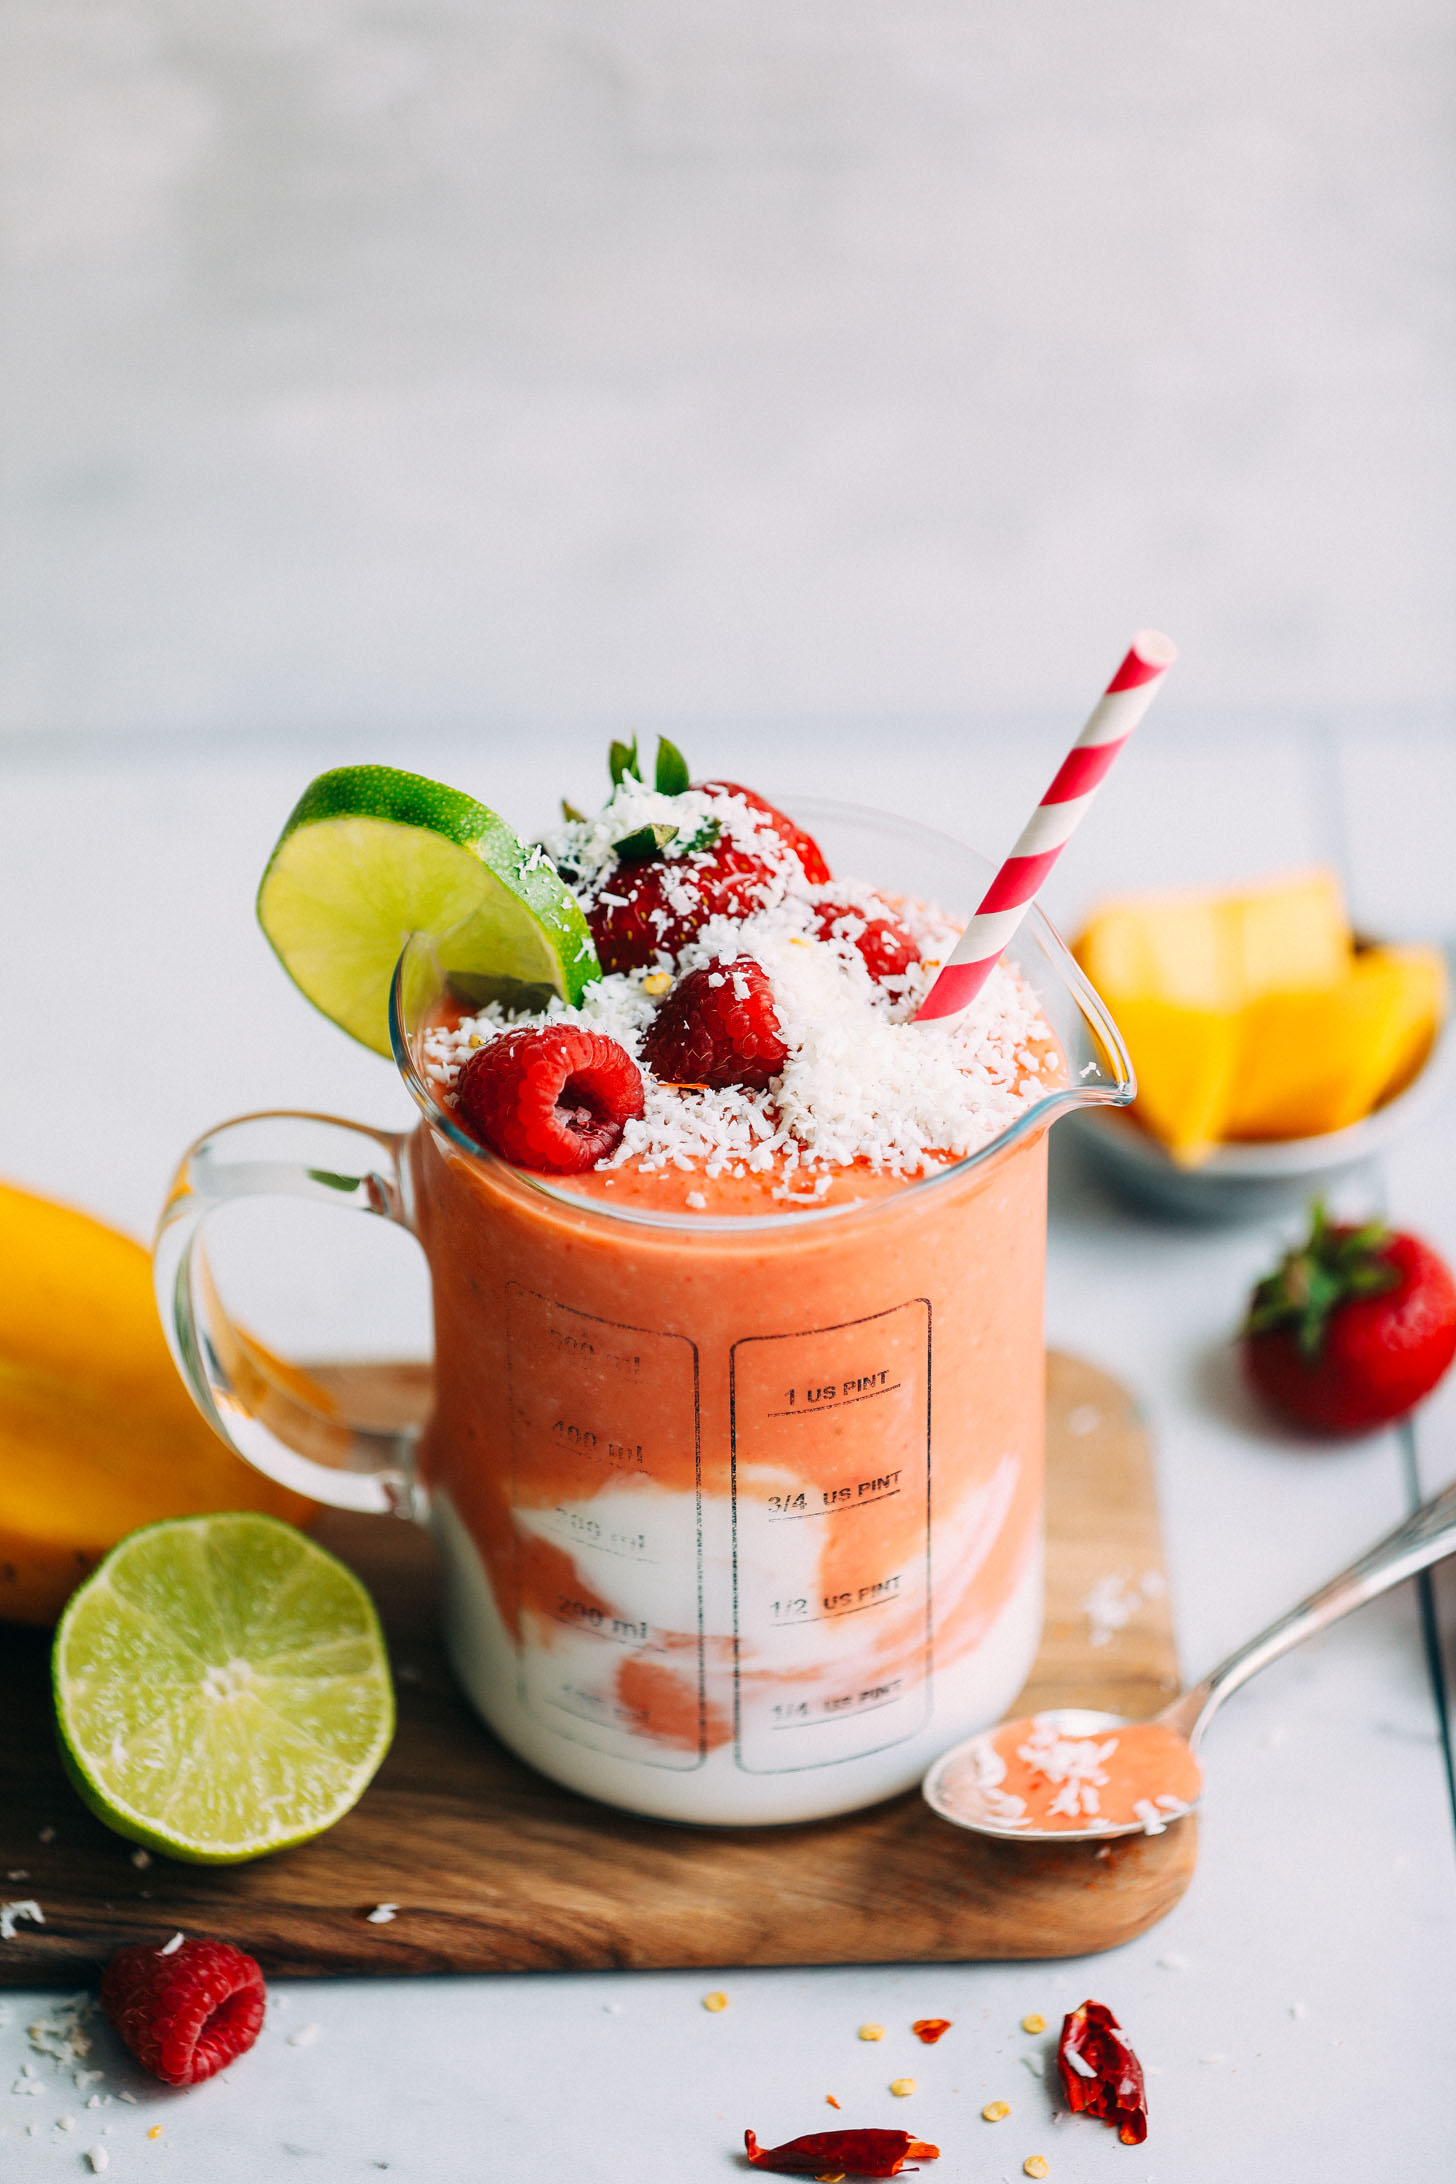 Glass serving jar filled with banana-free Gingery Mango & Berry Smoothie